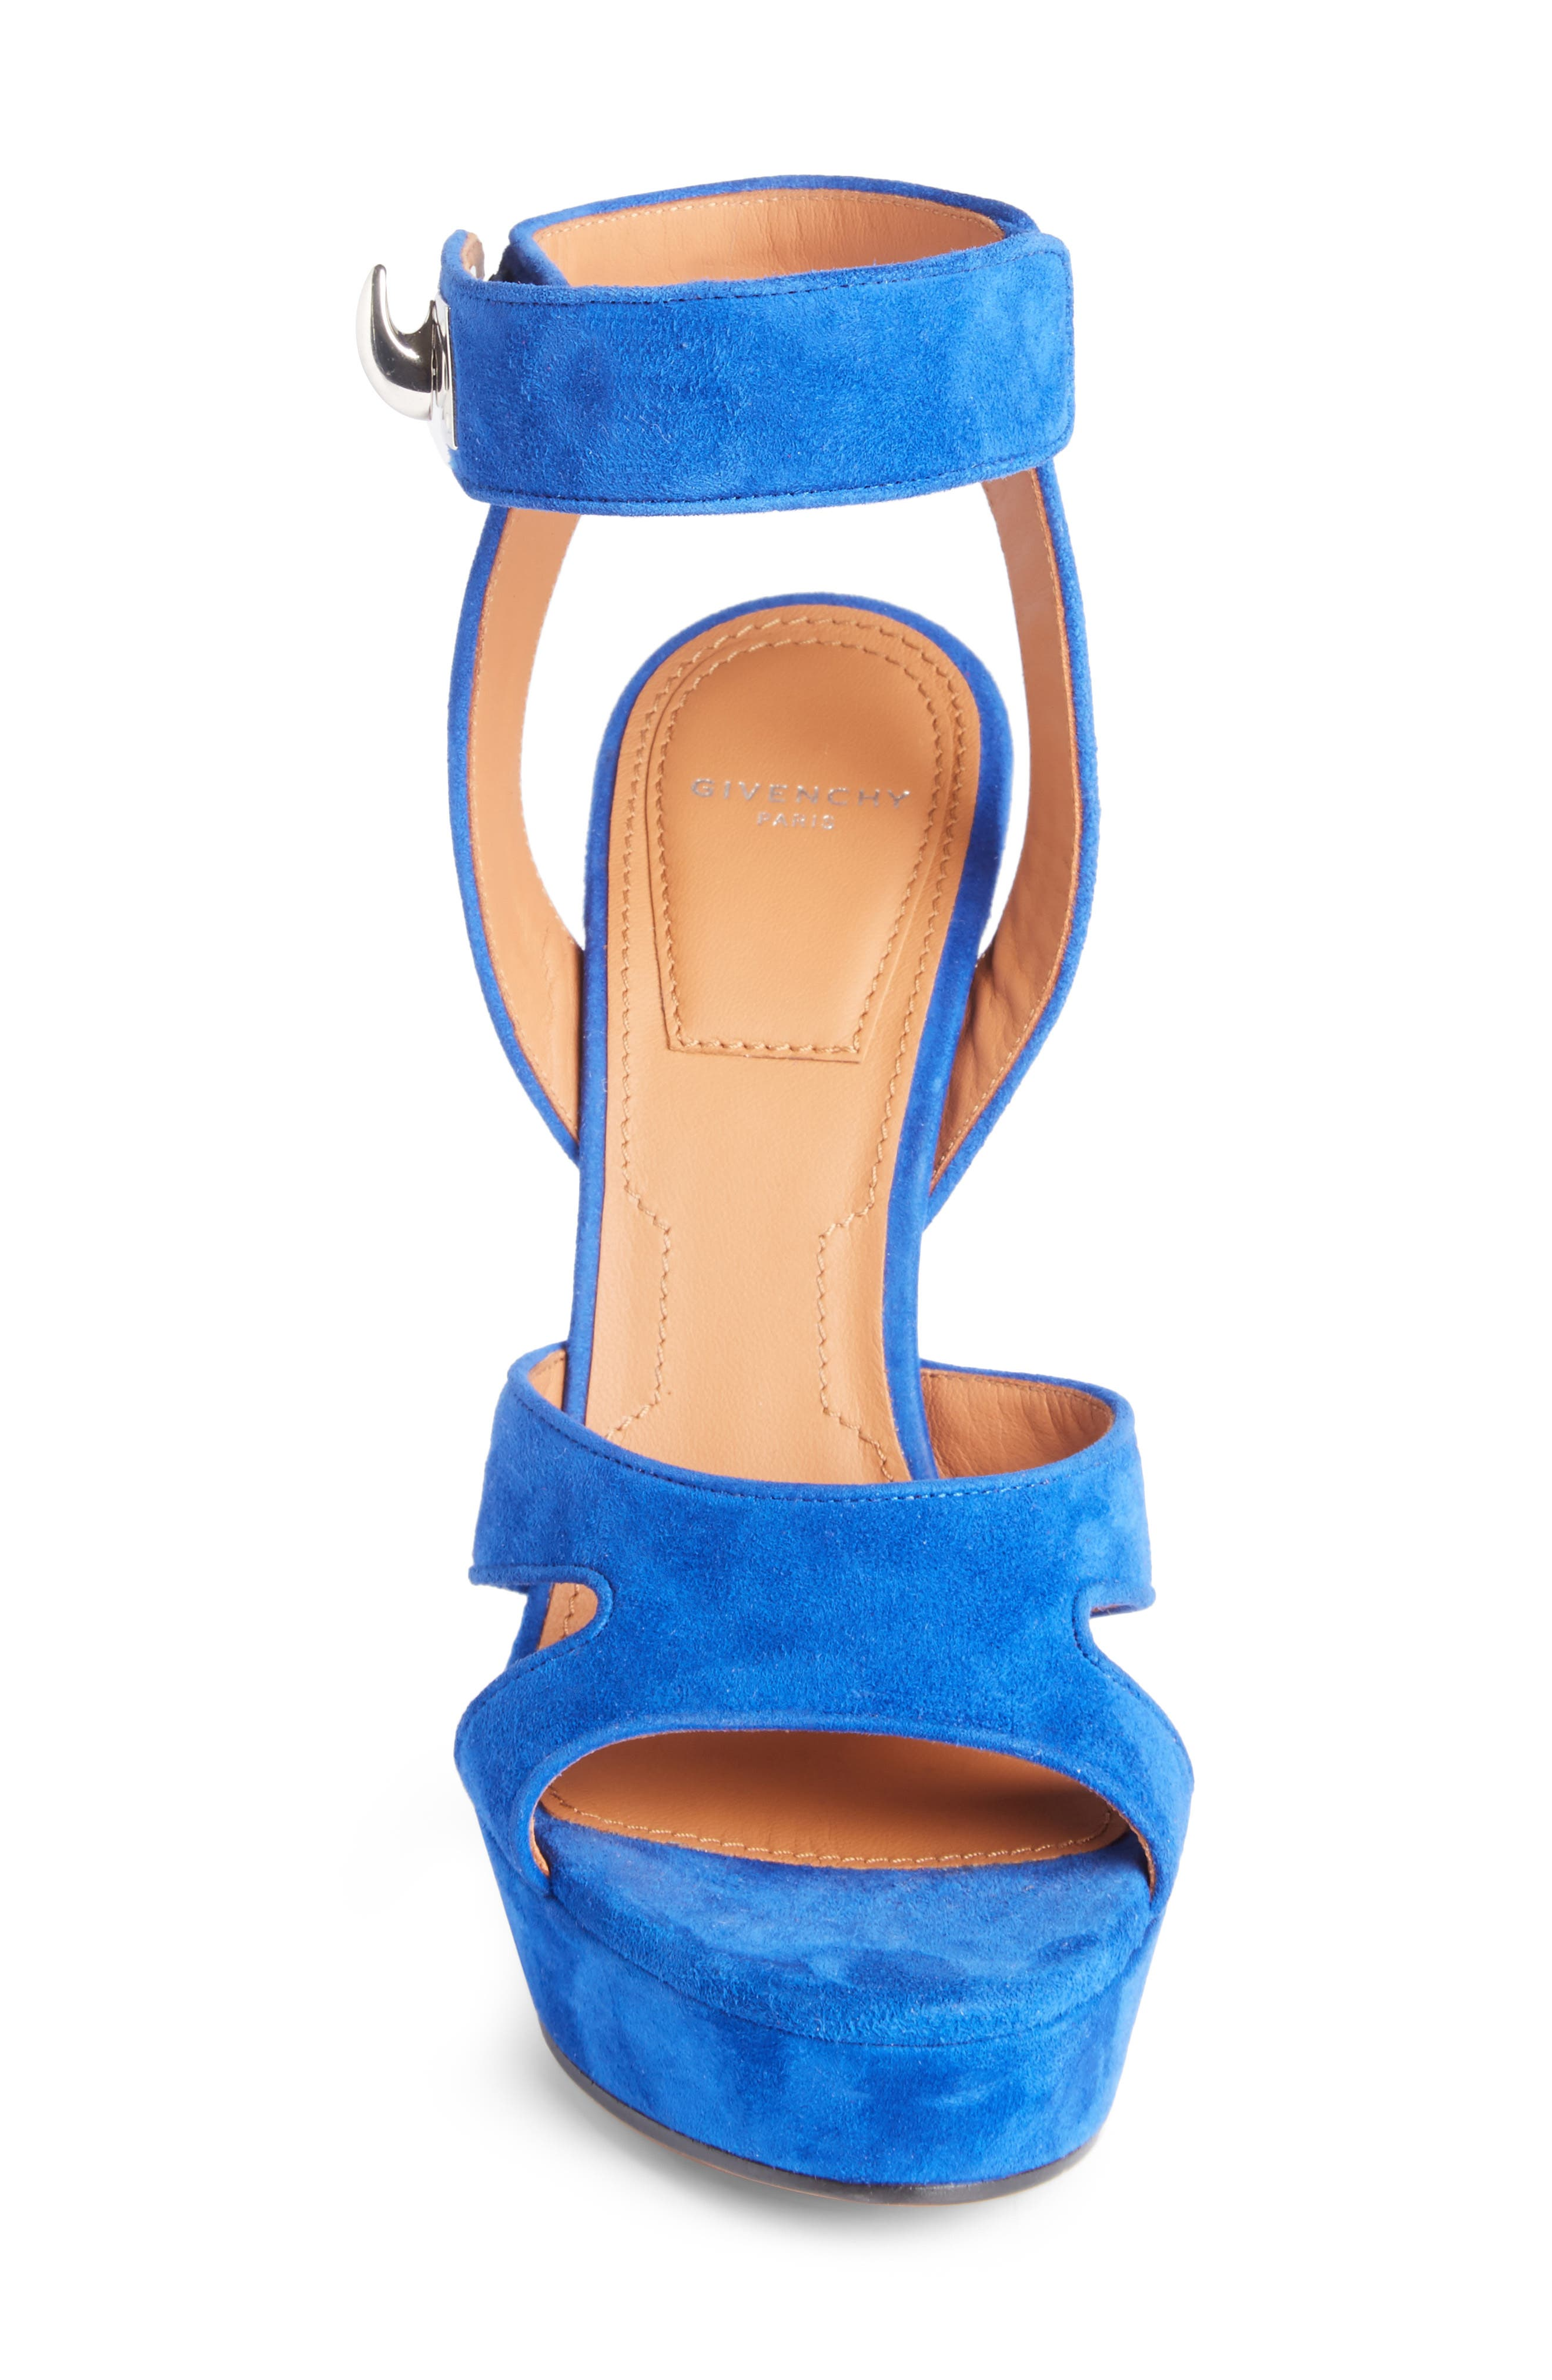 Shark's Tooth Sandal,                             Alternate thumbnail 3, color,                             Electric Blue